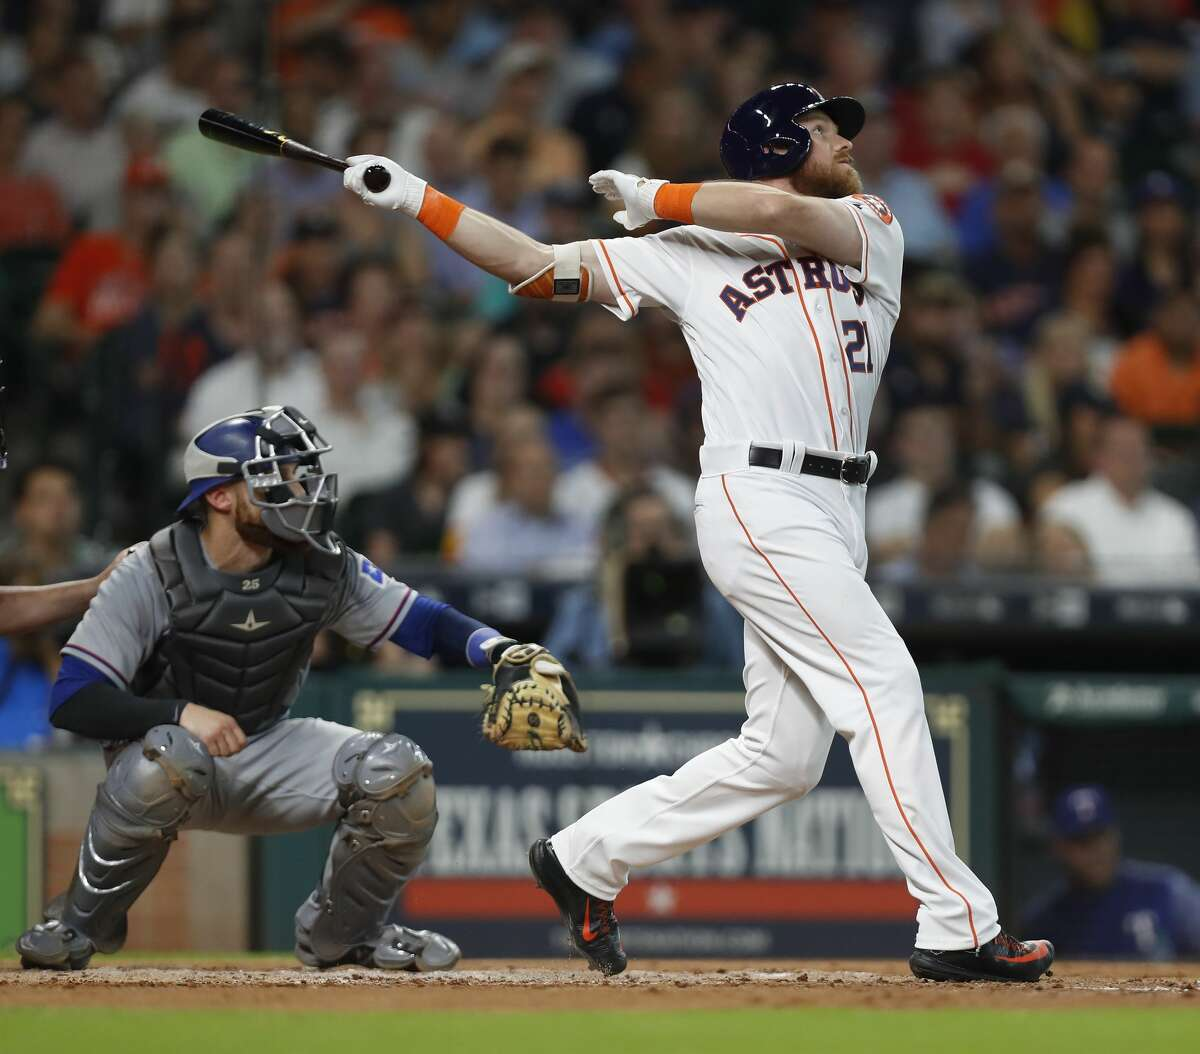 Houston Astros Derek Fisher (21) watches his ball fly out near the left field wall during his first at bat in the second inning of an MLB game at Minute Maid Park, Wednesday, June, 14, 2017. ( Karen Warren / Houston Chronicle )